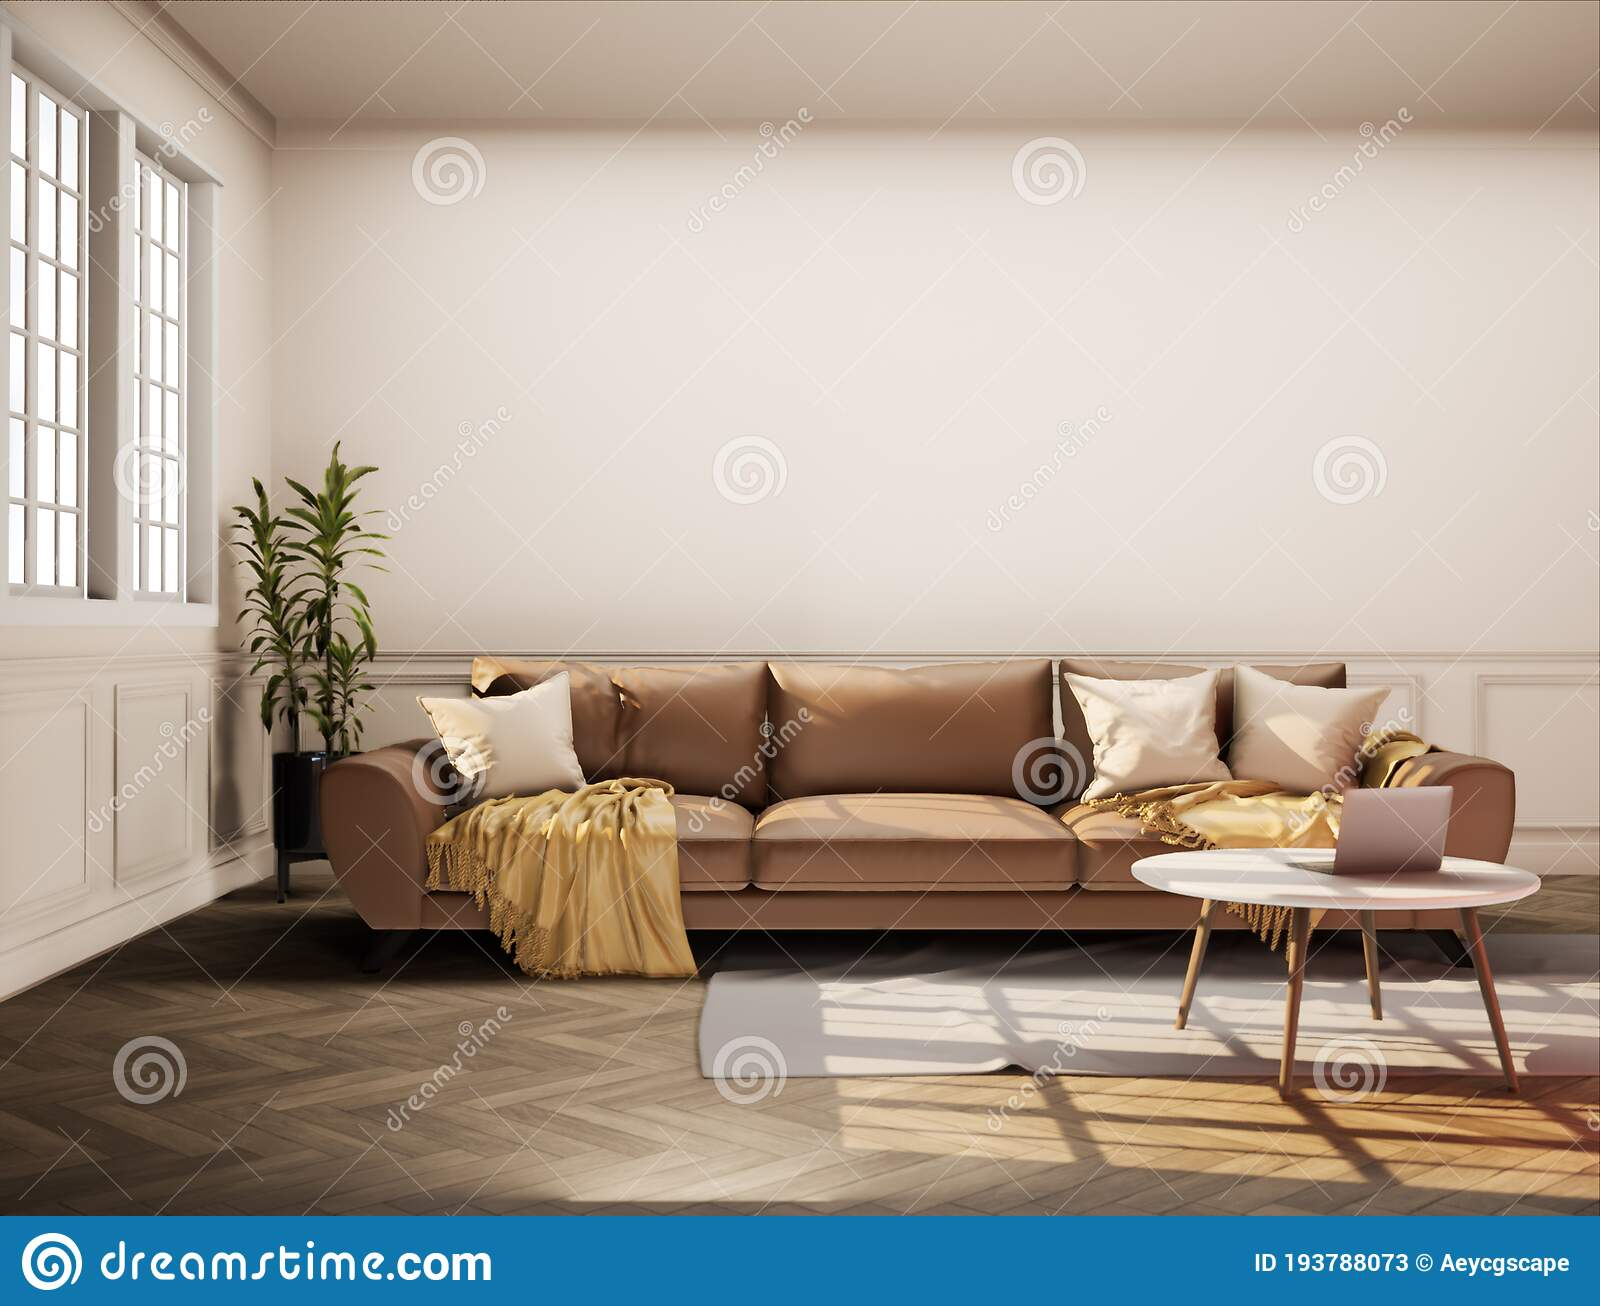 Vintage Style Living Room With Beige Color Wall 3d Render The Rooms Have Wooden Floors Light Brown Walls And Window Stock Illustration Illustration Of Sofa Design 193788073